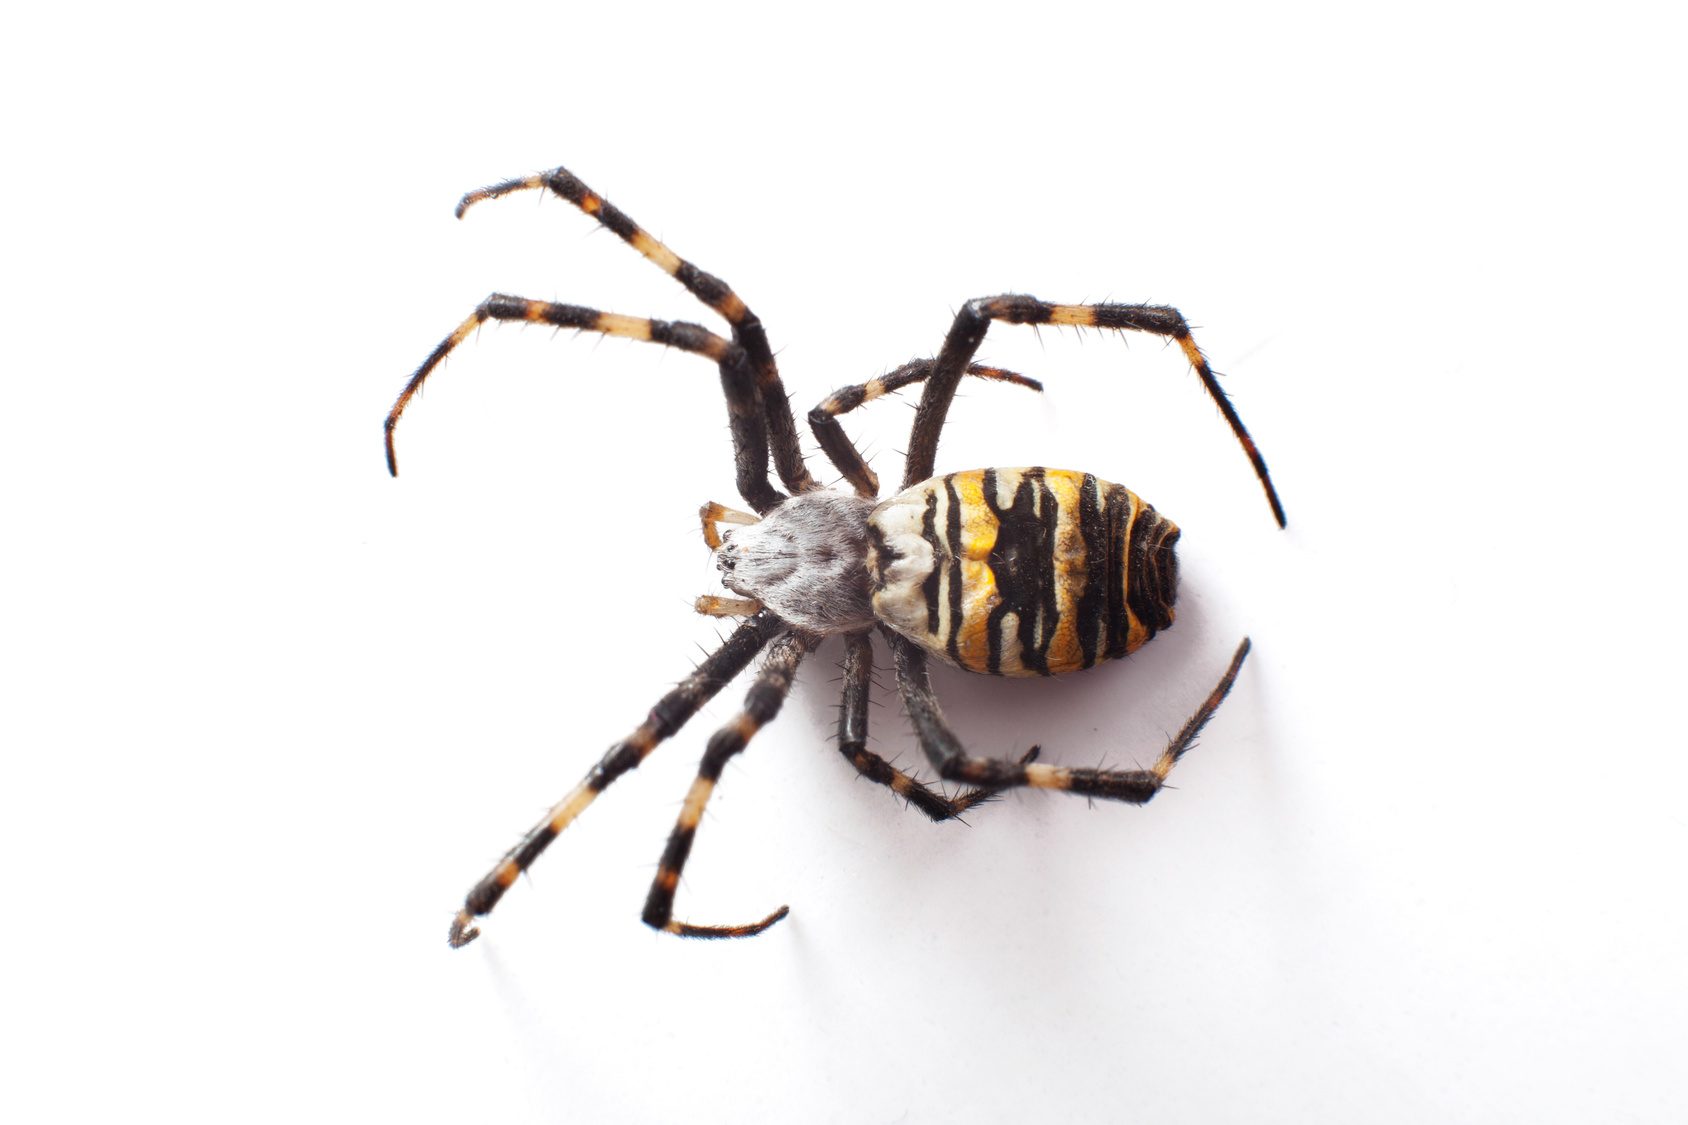 Sort Spiders And Insects Experiment Exchange